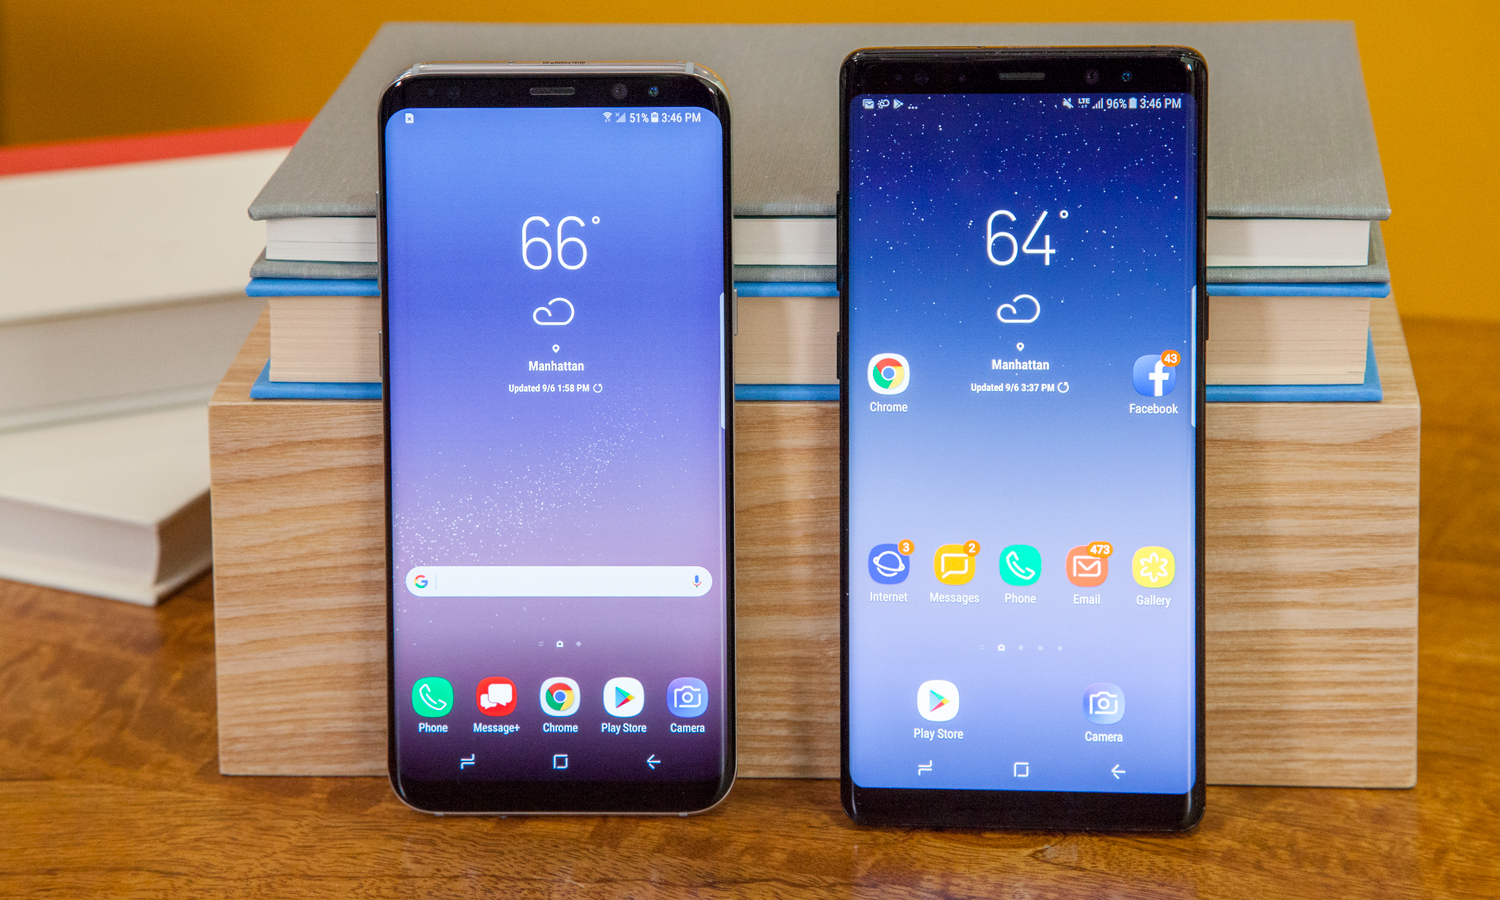 Galaxy Note 8 vs Galaxy S8: What Should You Buy? | Tom's Guide